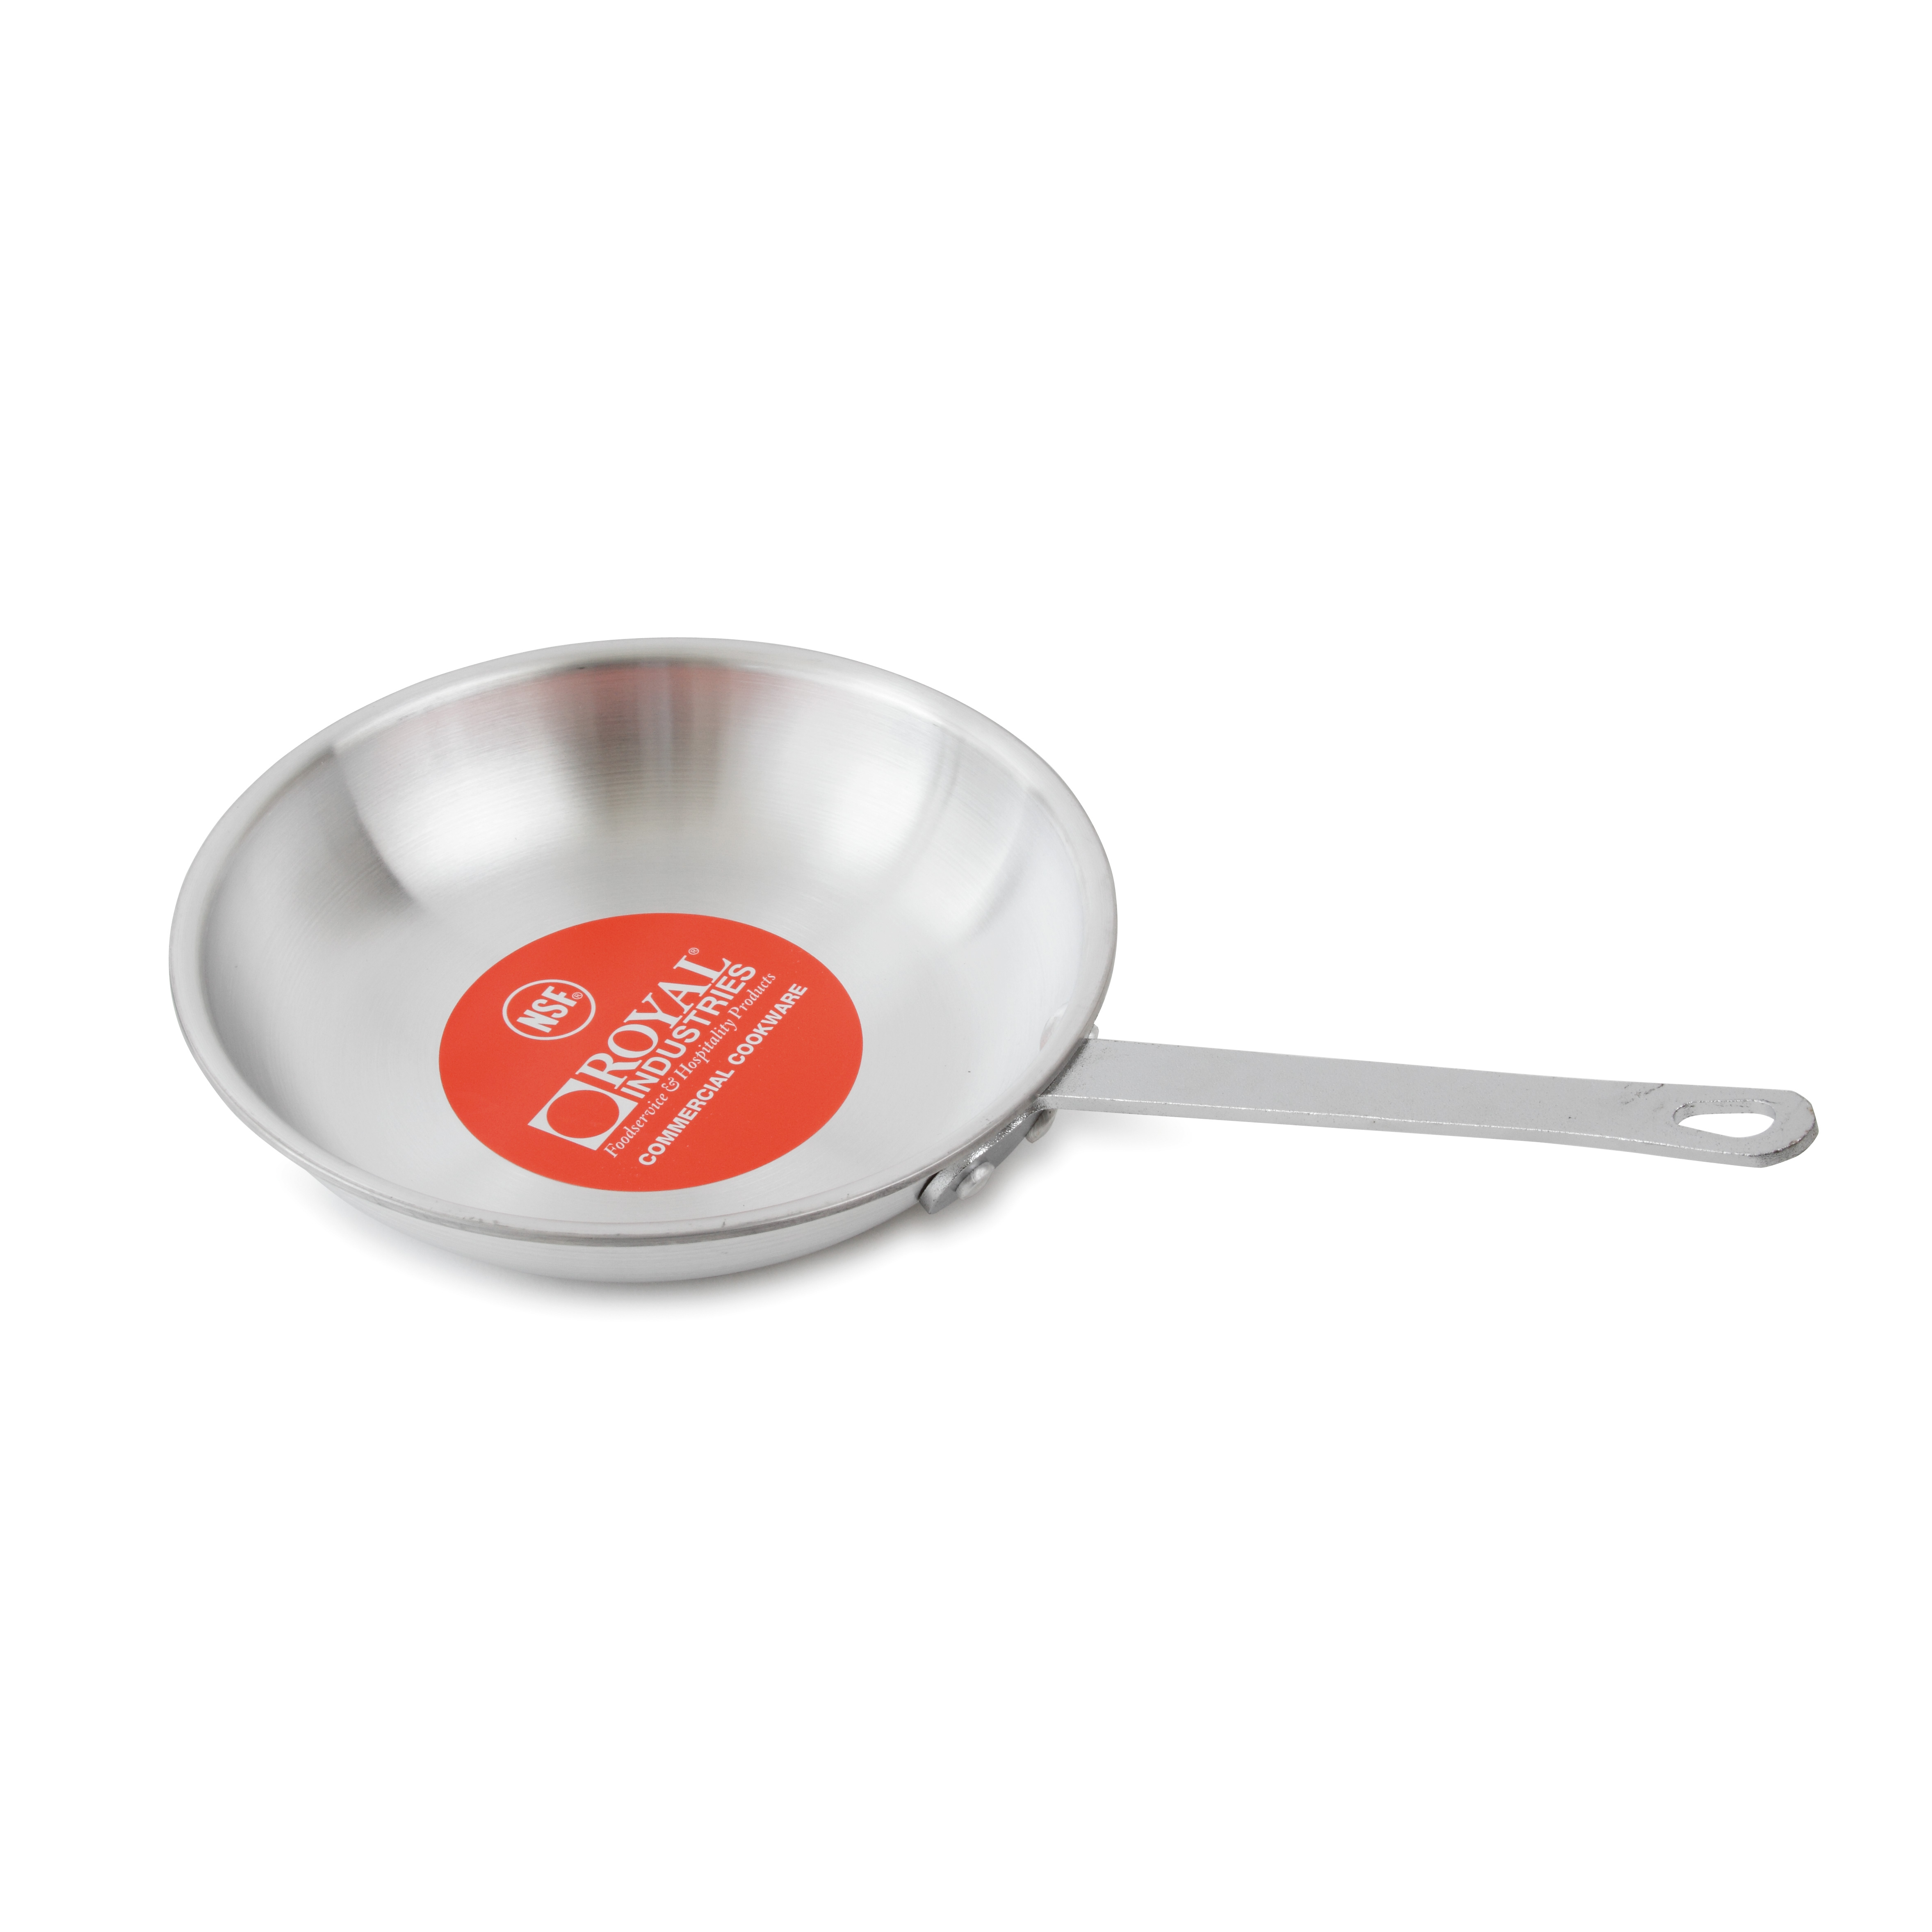 Royal Industries ROY RFP EC 8 A fry pan